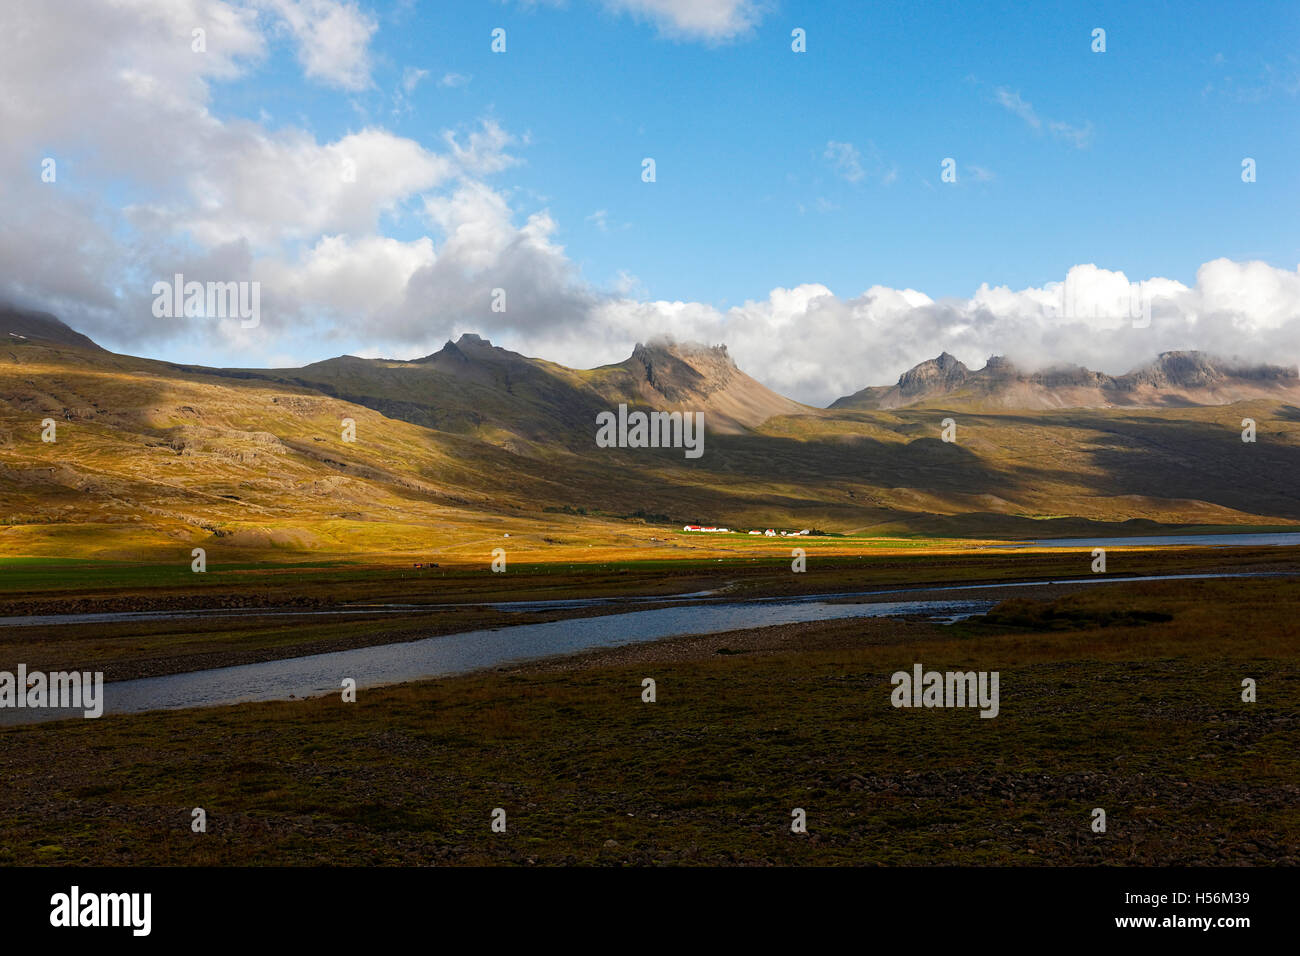 Landscape, East Iceland, North Atlantic, Europe - Stock Image